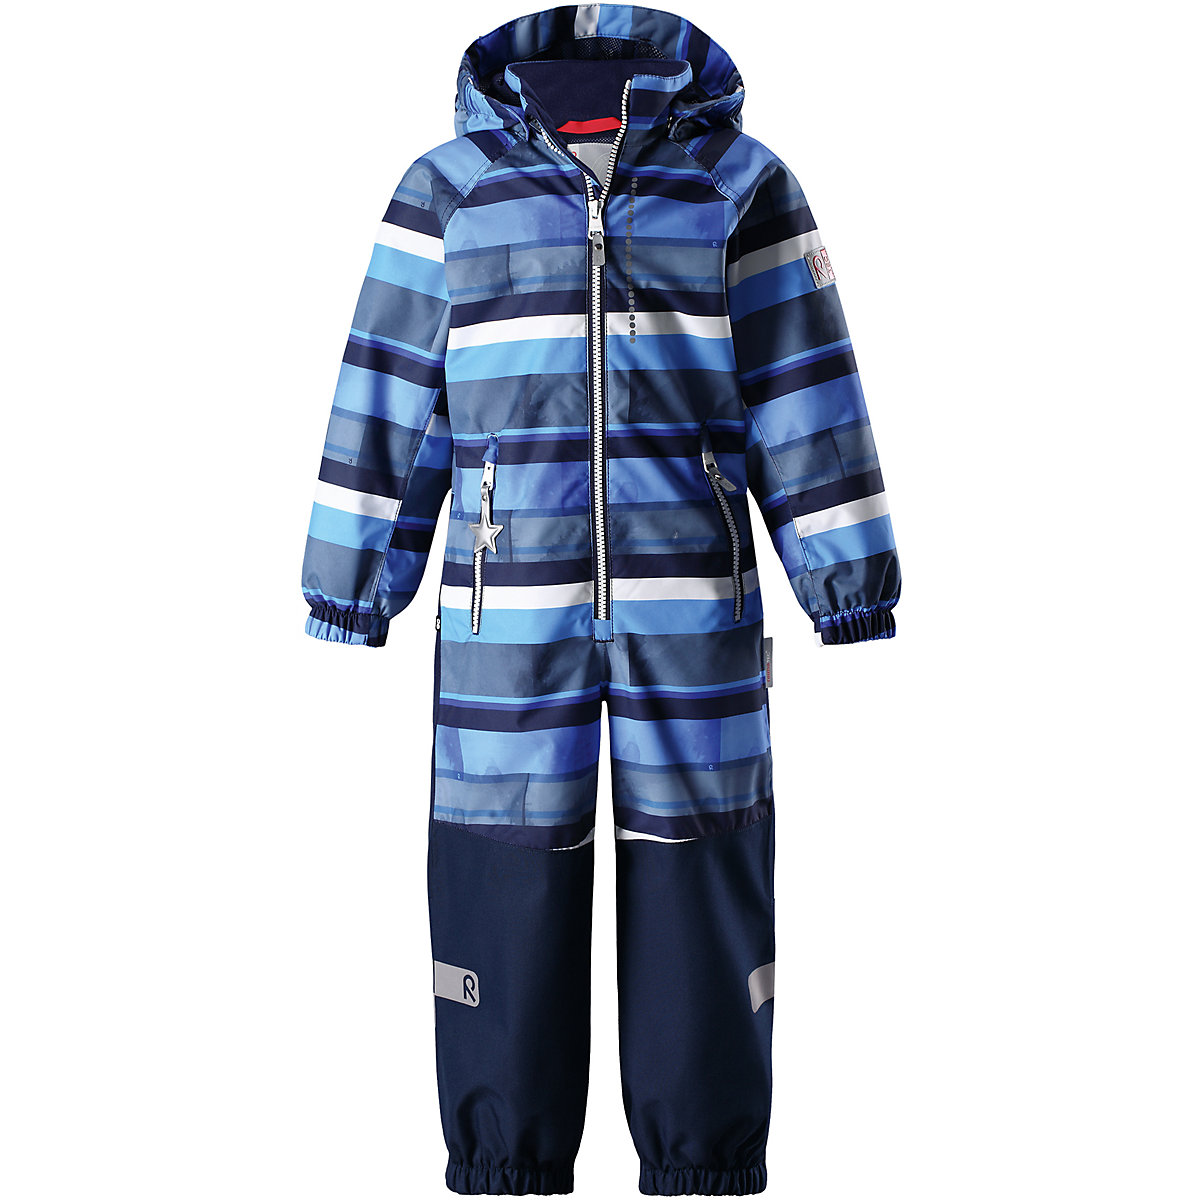 REIMA Overalls  7636551 for boys and girls polyester winter reima overalls 7628255 for boys and girls polyester winter